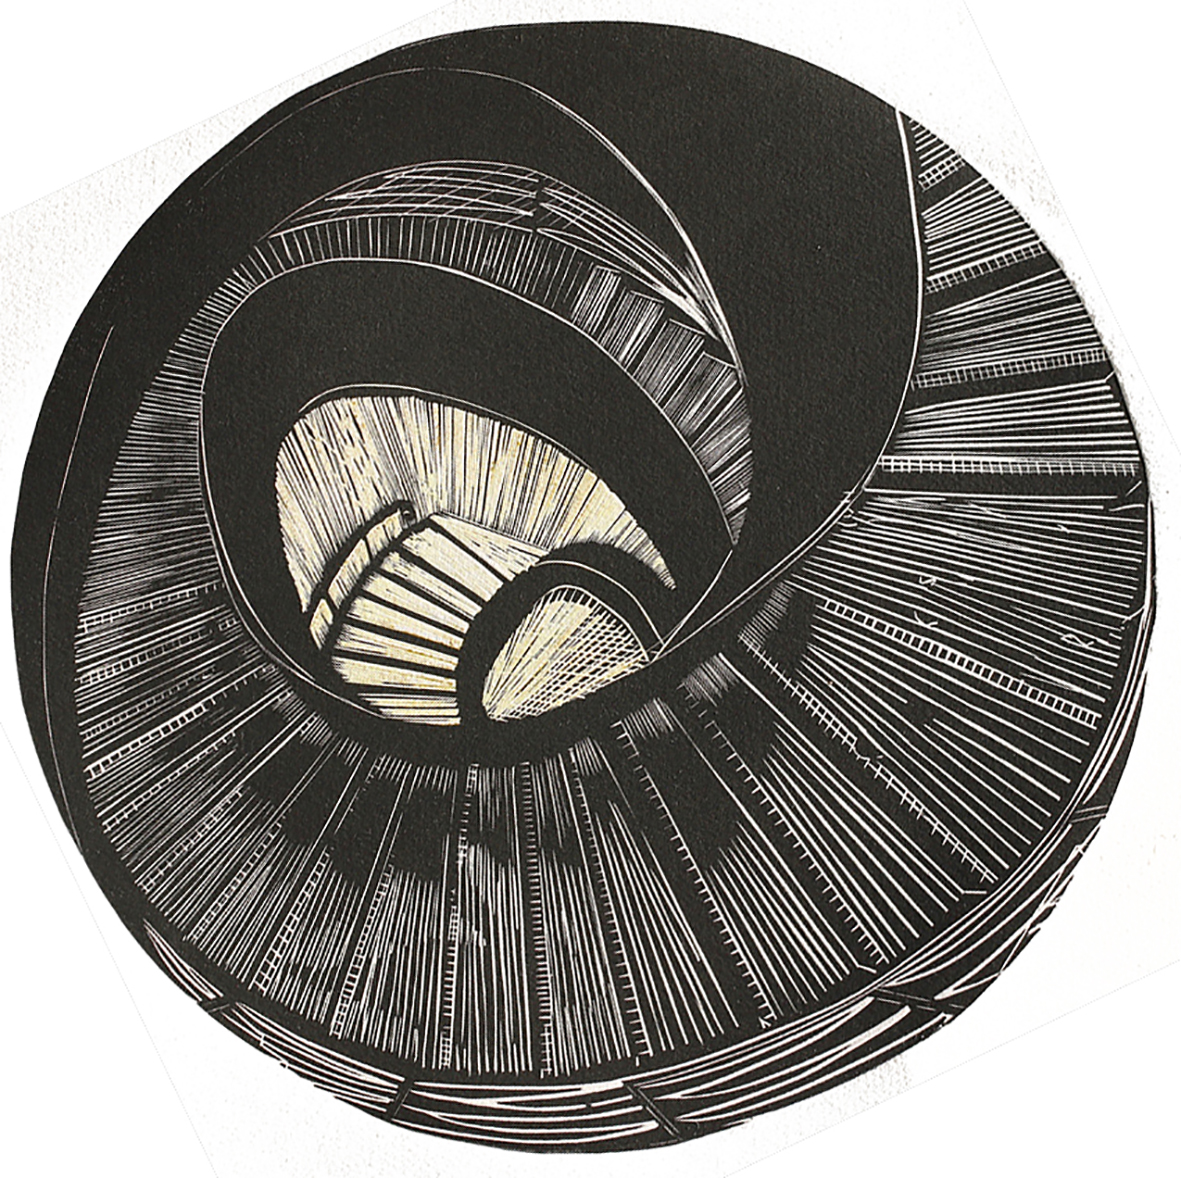 In the round, Linocut